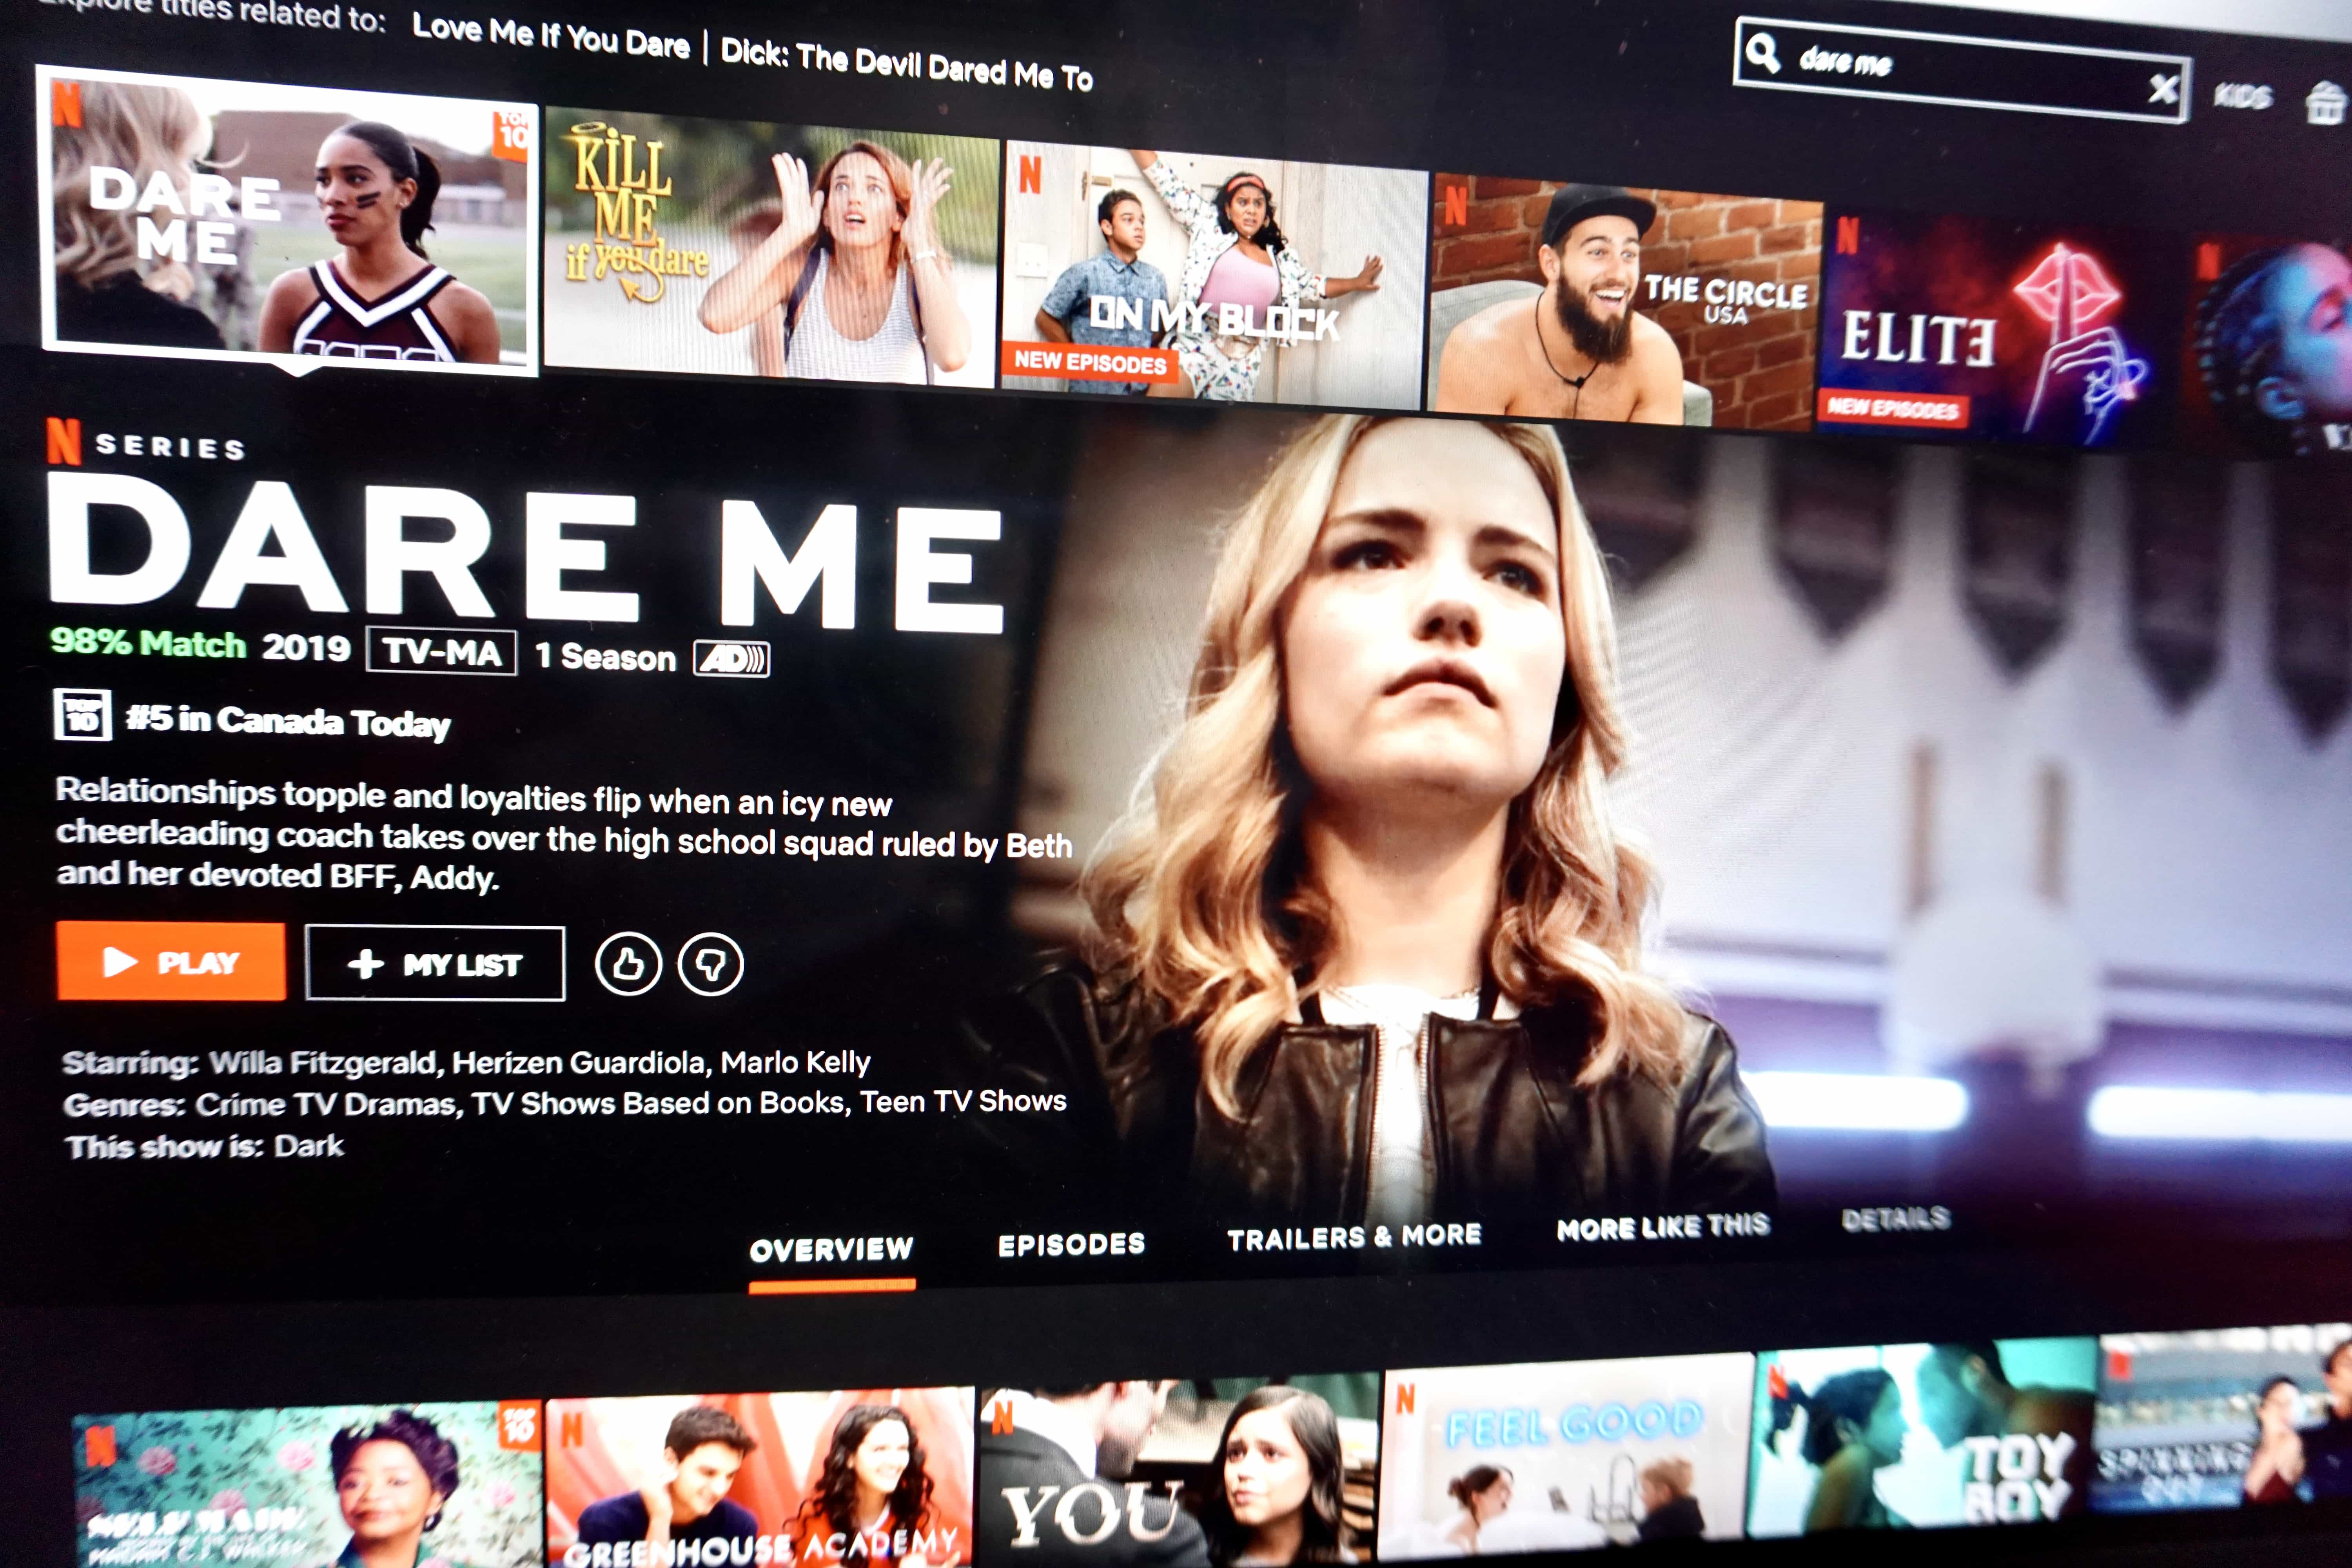 Dare Me is a daring new take on the high school drama